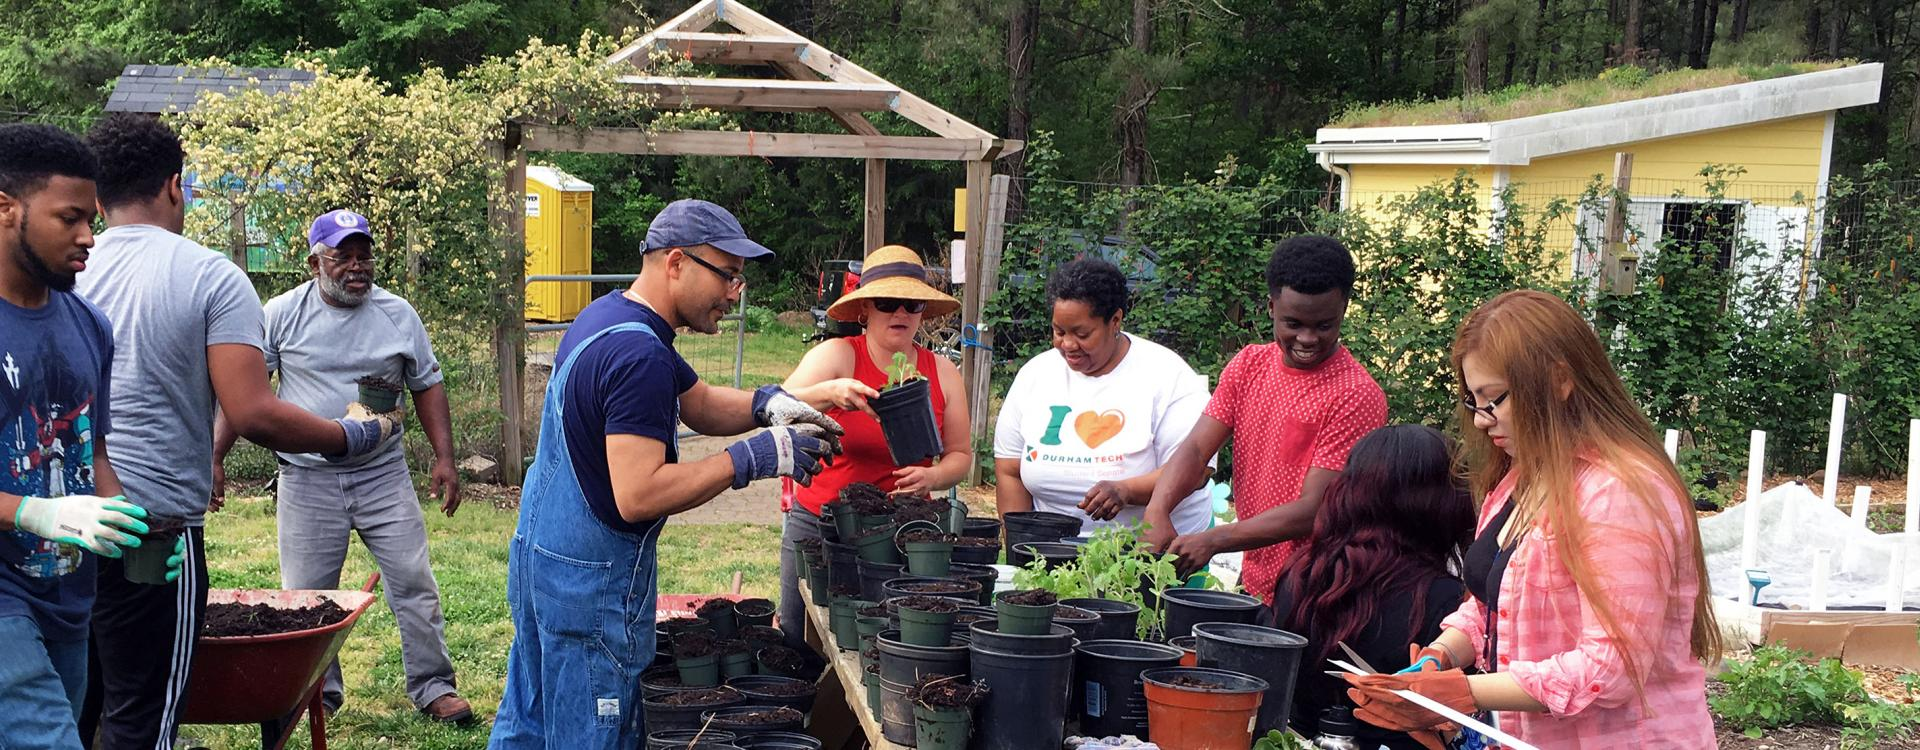 Students potting plants at Briggs Community Gardens